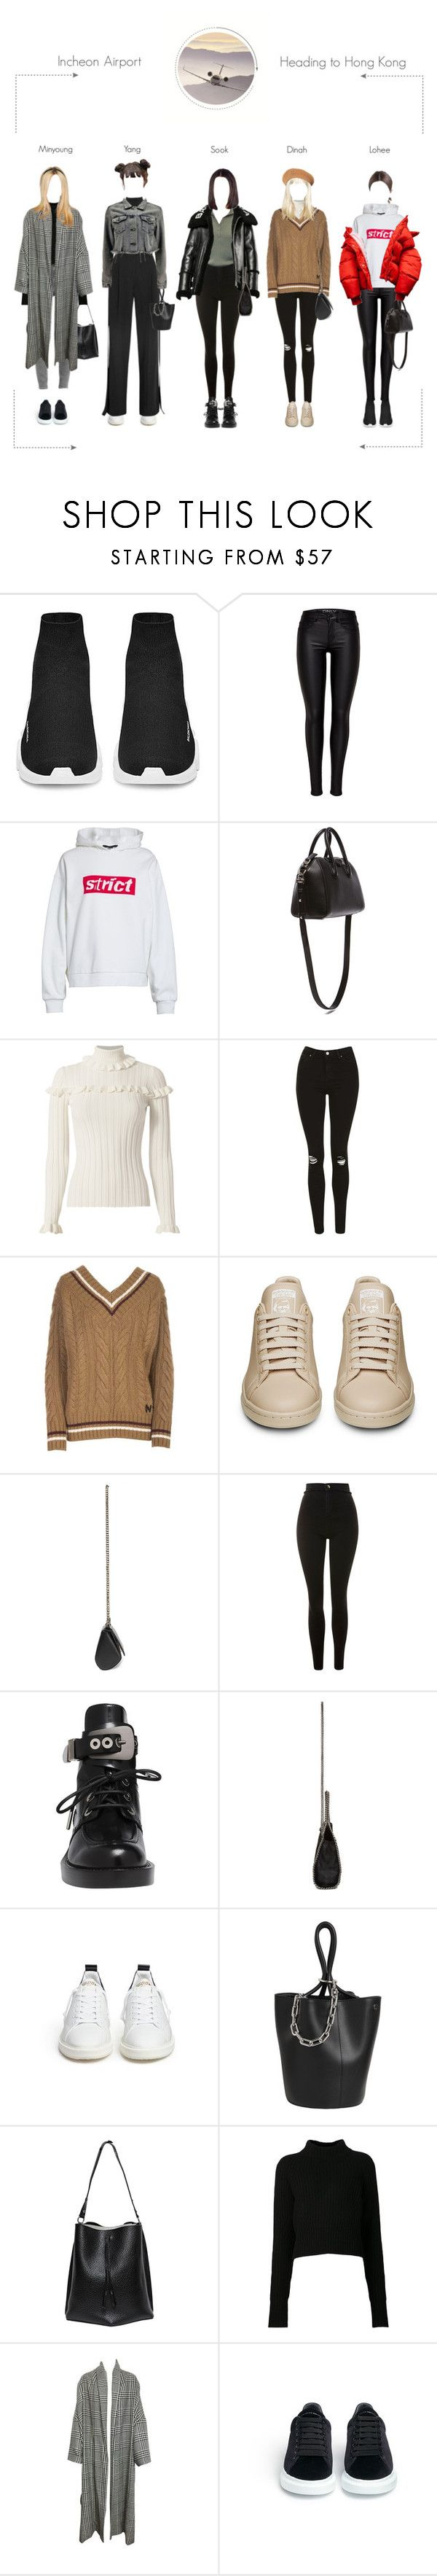 """Incheon Airport Heading To Hong Kong"" by spicegirls-official ❤ liked on Polyvore featuring Alexander Wang, Givenchy, Cinq à Sept, Topshop, N°21, FARIS, Balenciaga, STELLA McCARTNEY, Golden Goose and Maison Margiela"